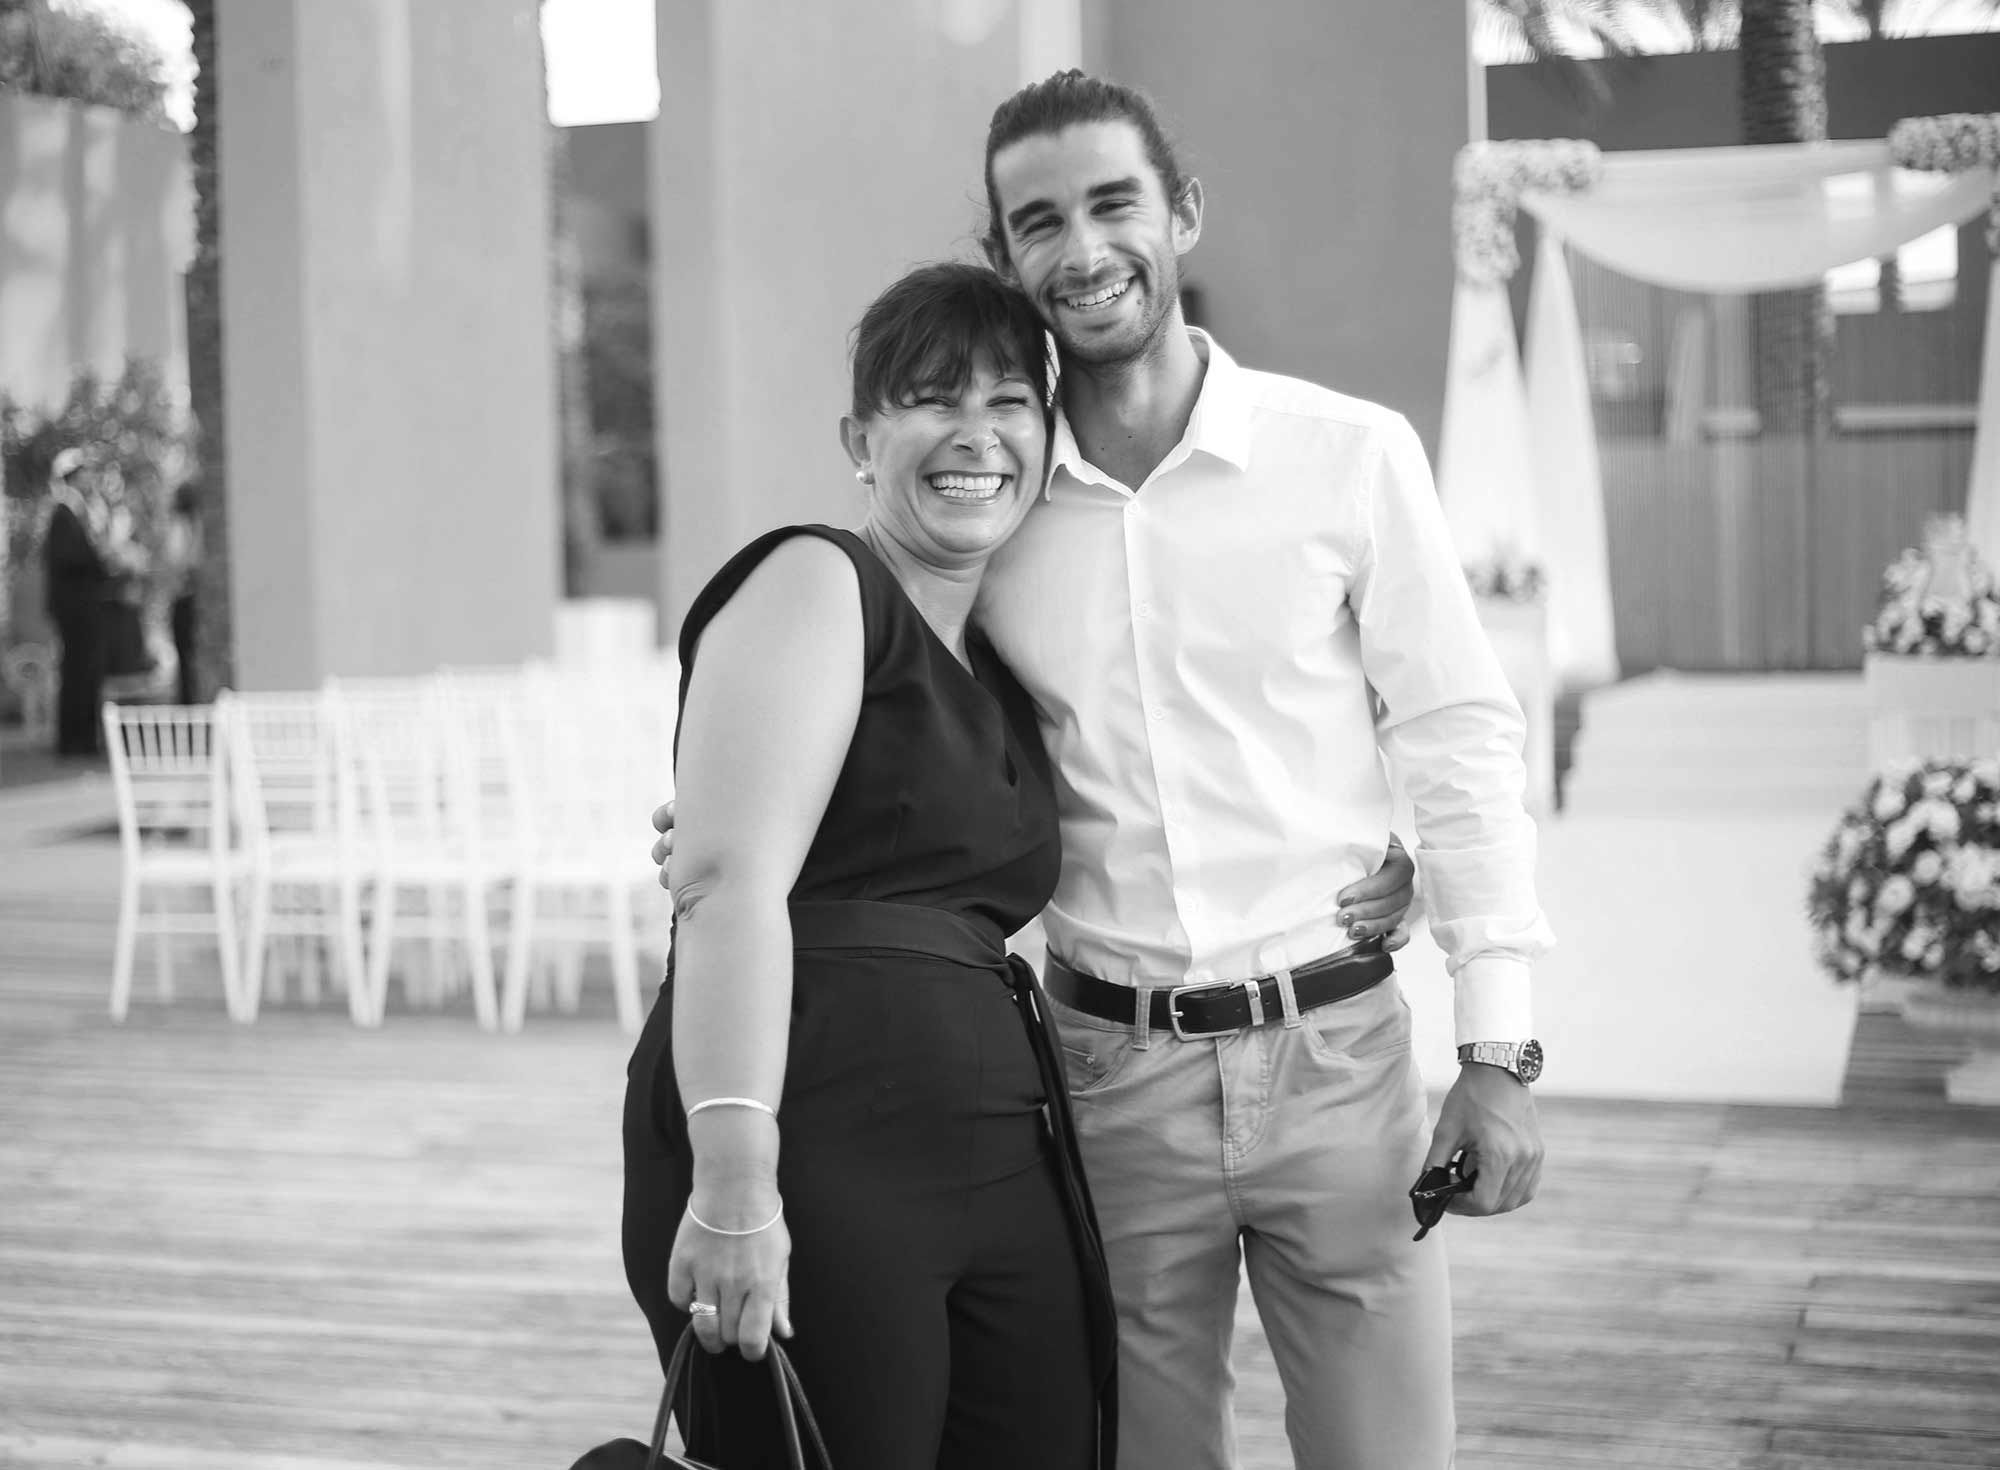 Lea-jeremie-Mariage-Tel-Aviv-Israel-photographe-Paris-Video66